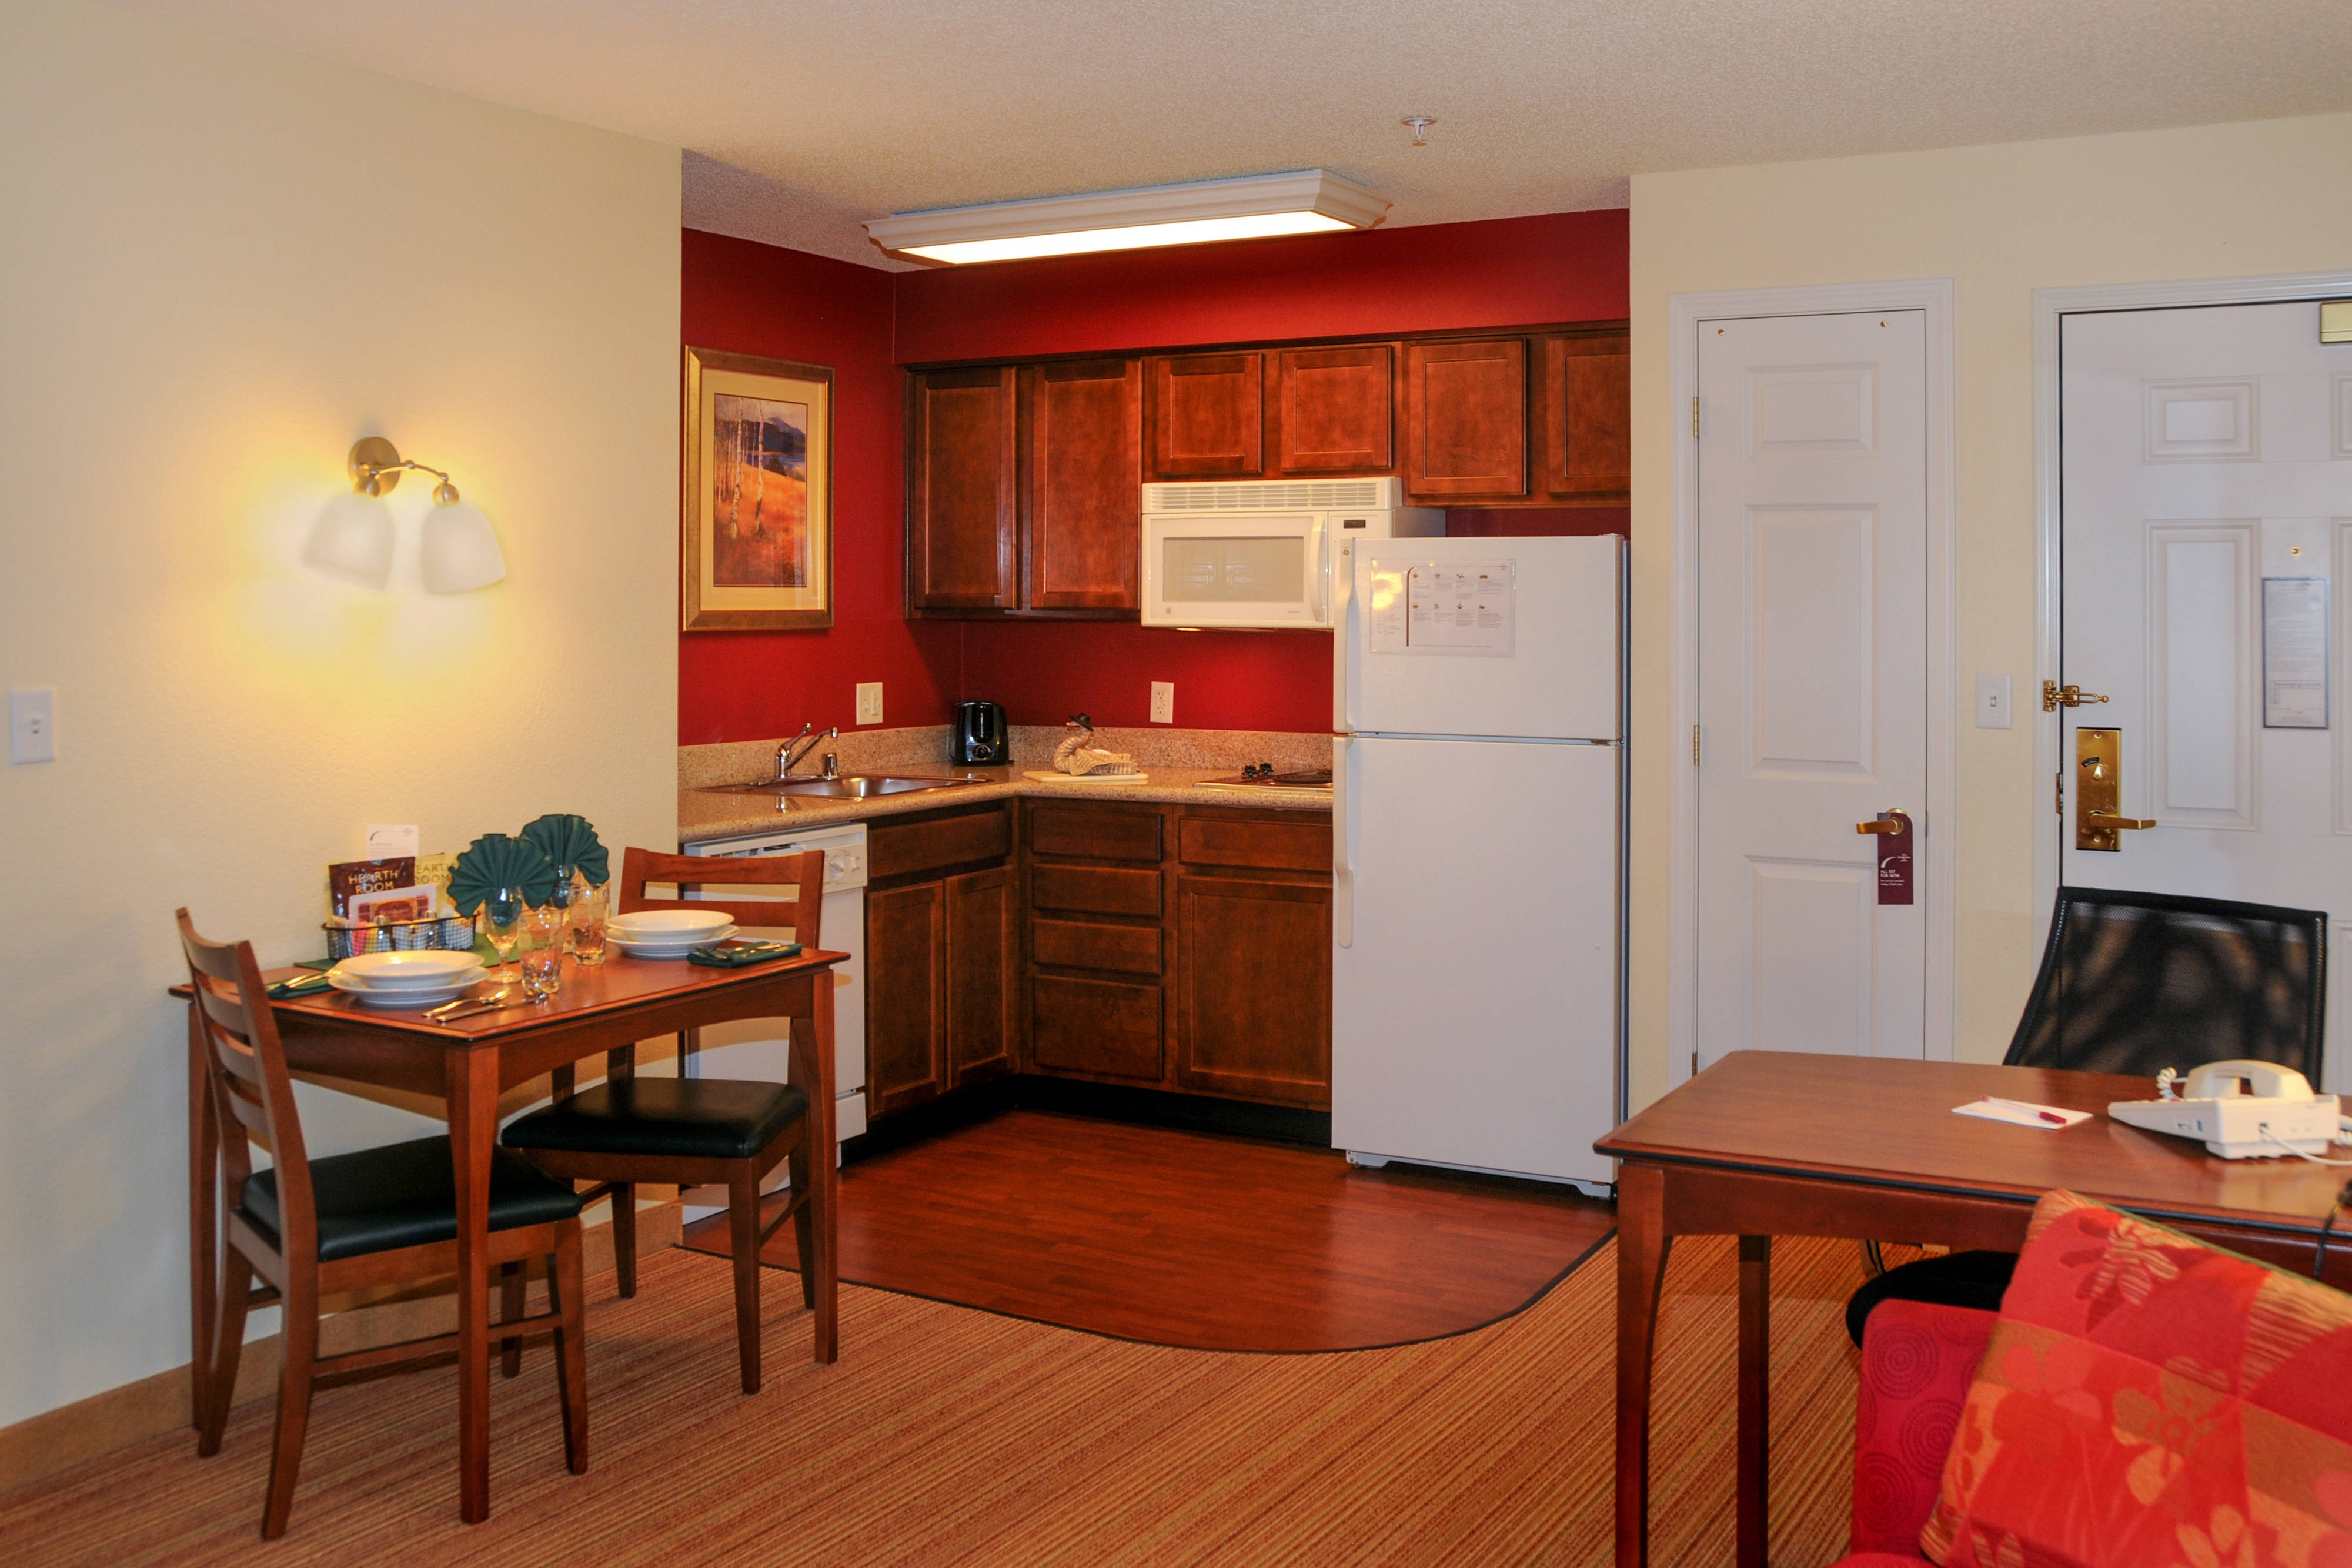 Colorado Springs Hotel with kitchen